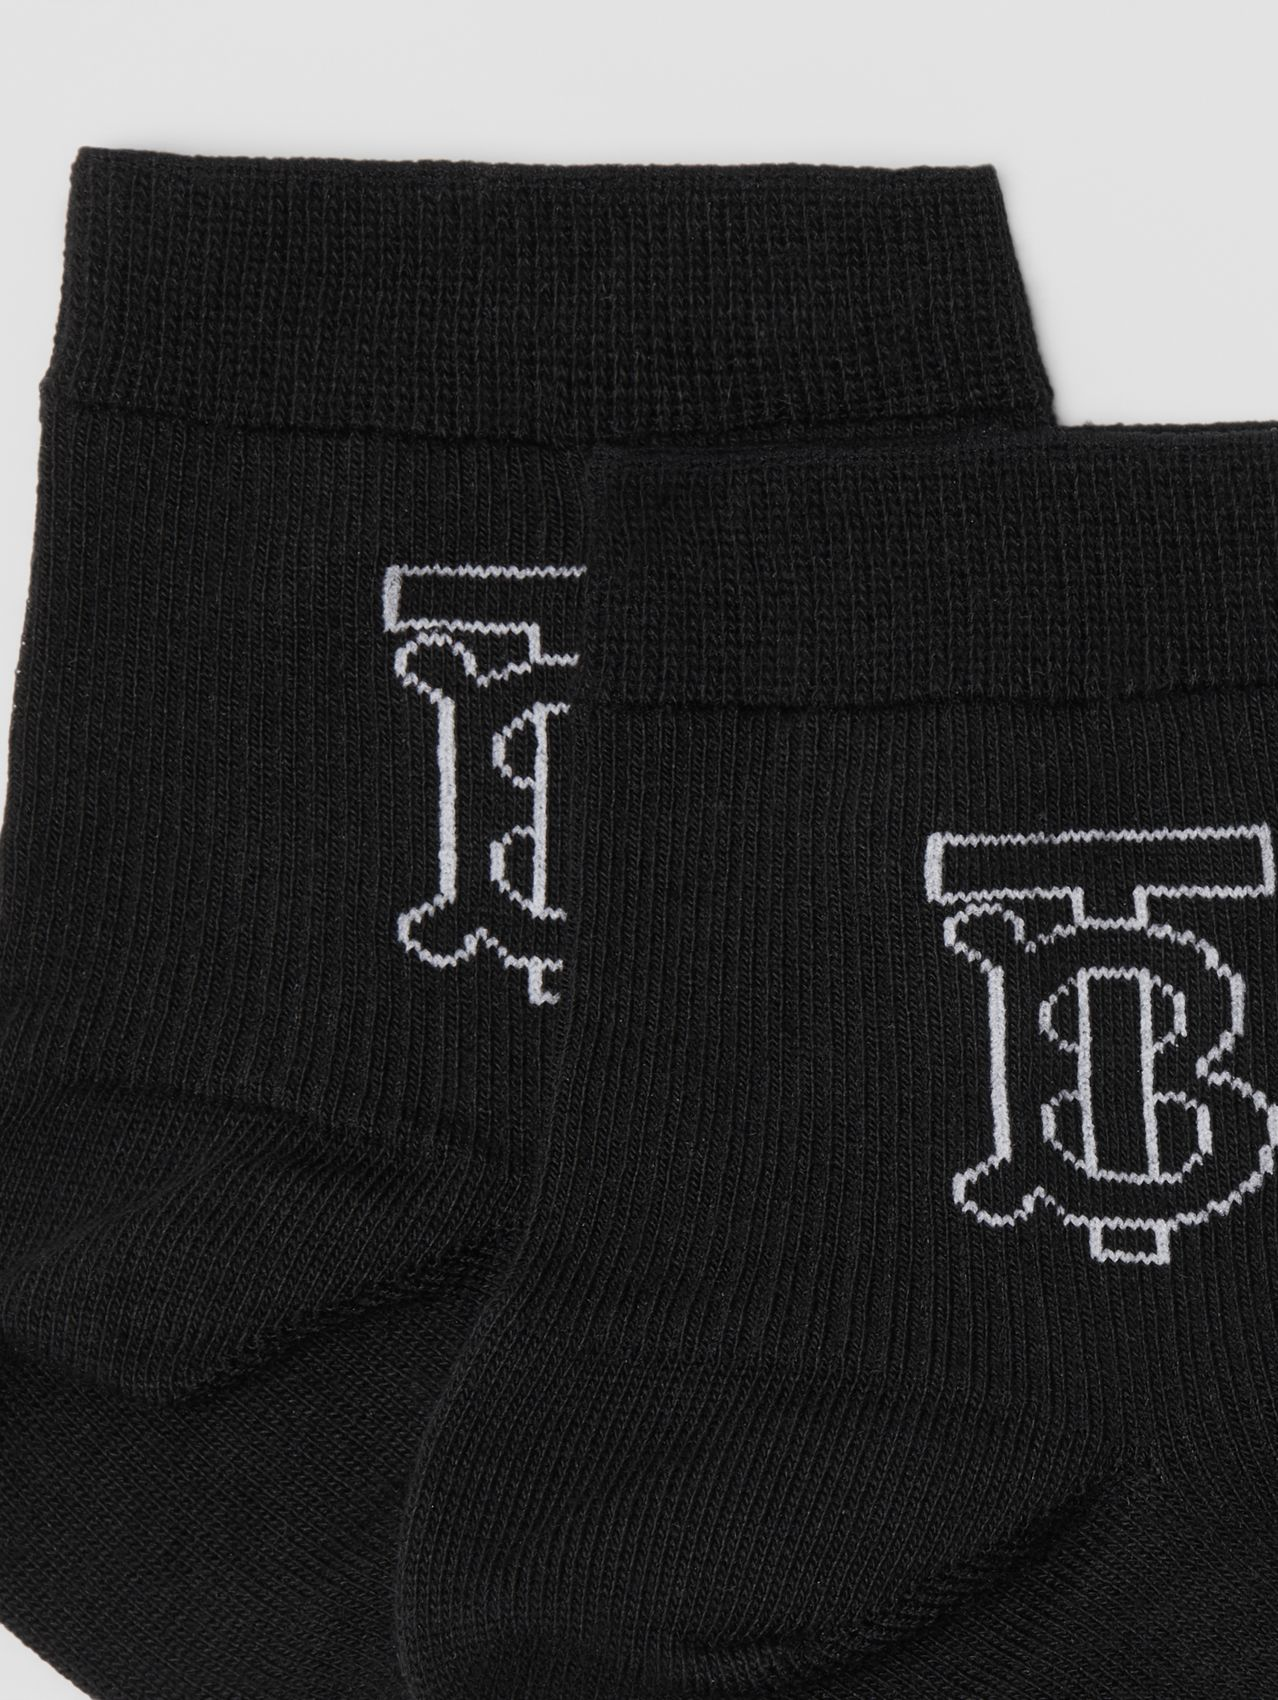 Monogram Intarsia Socks in Black